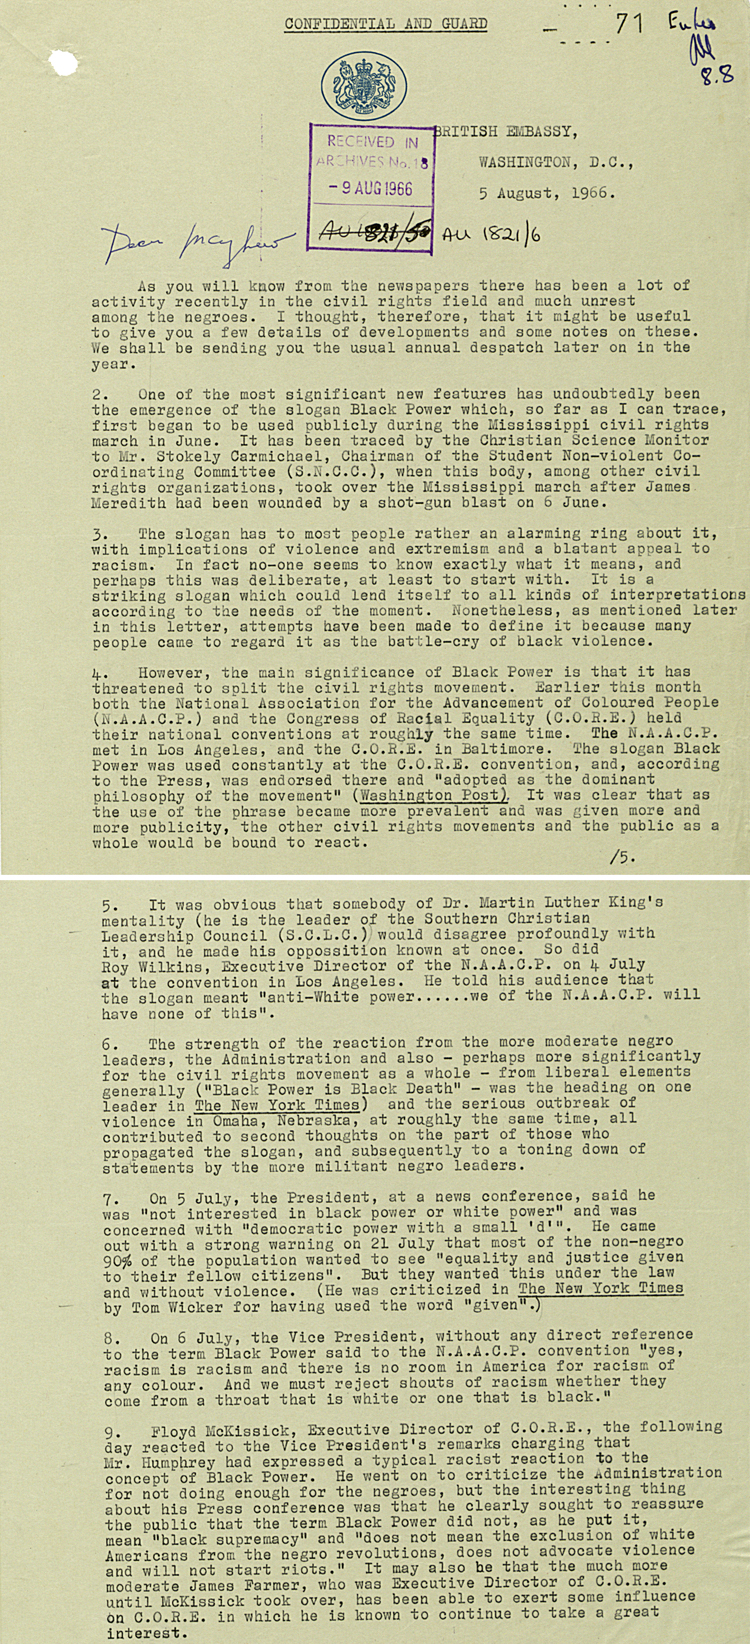 """Despatch from British Embassy Washington to Foreign Office on use of """"Black power"""" slogan, 5th August 1966 (FO 371/185052)"""